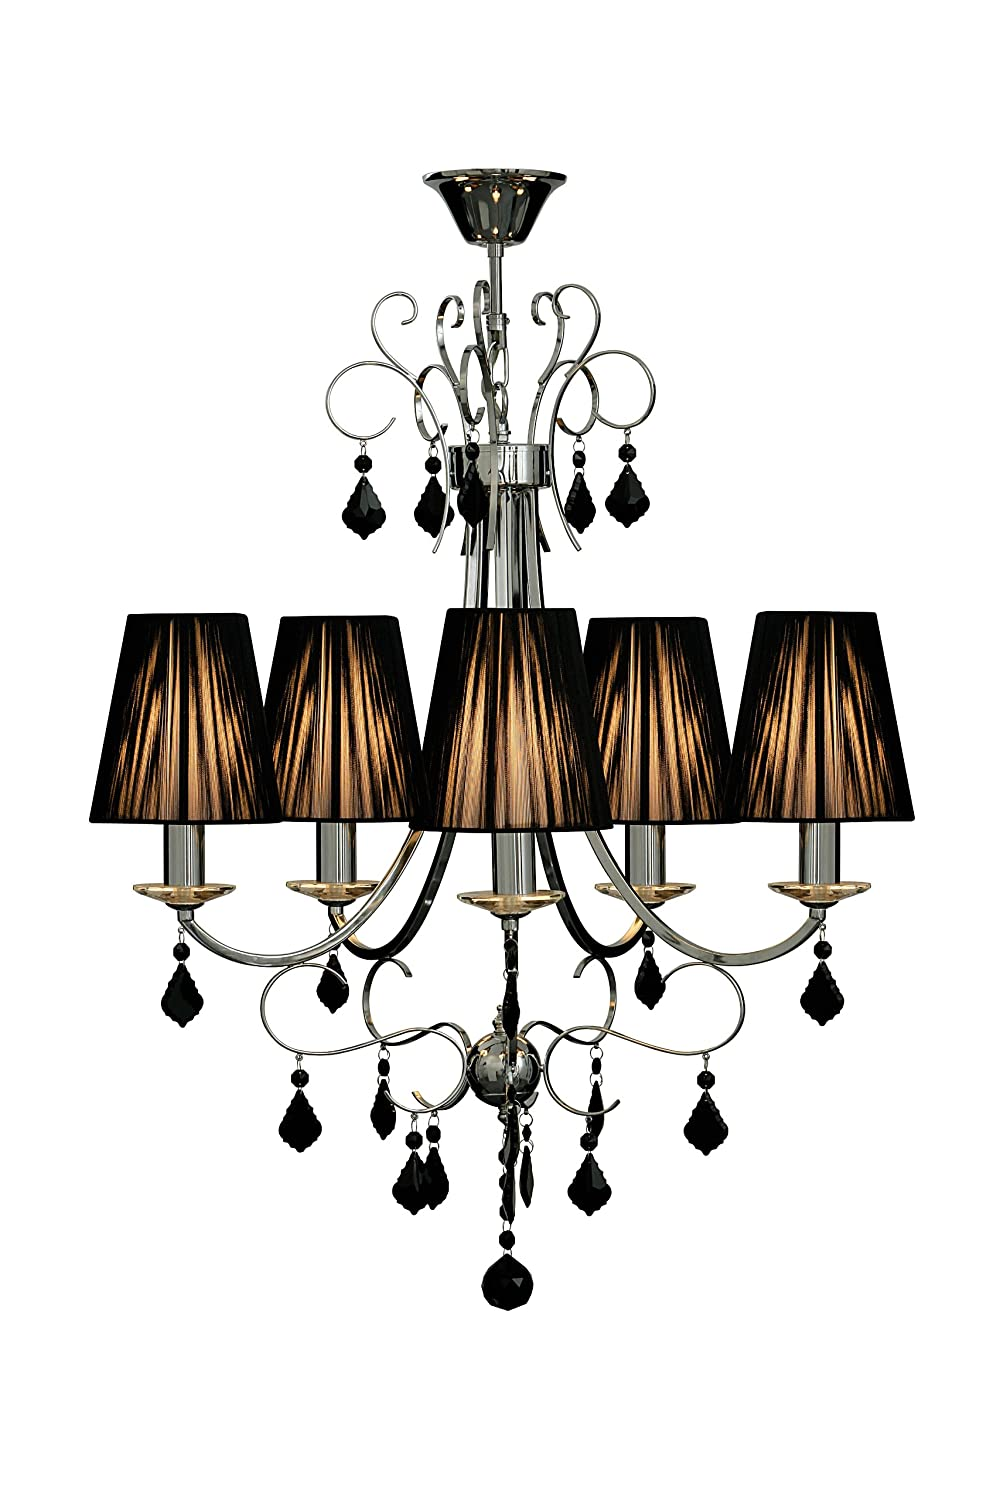 Premier Housewares Luma 3 Arm Black Chandelier Crystal With Ribbed Fabric Shades Co Uk Lighting